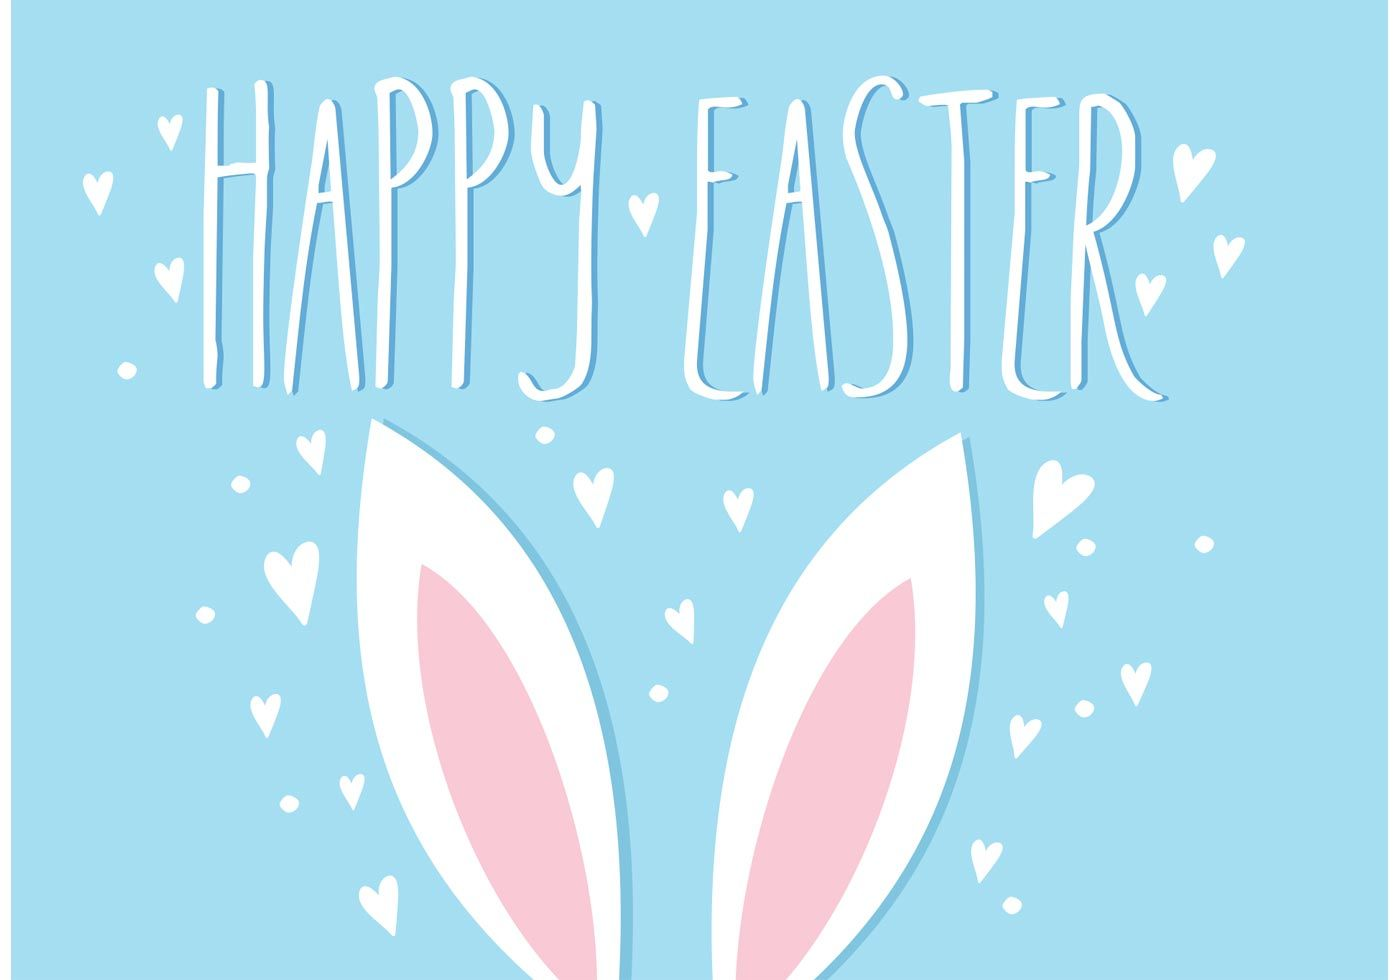 1400x980 Easter Bunny Ears Vector Illustration - Download Free Vector Art ...